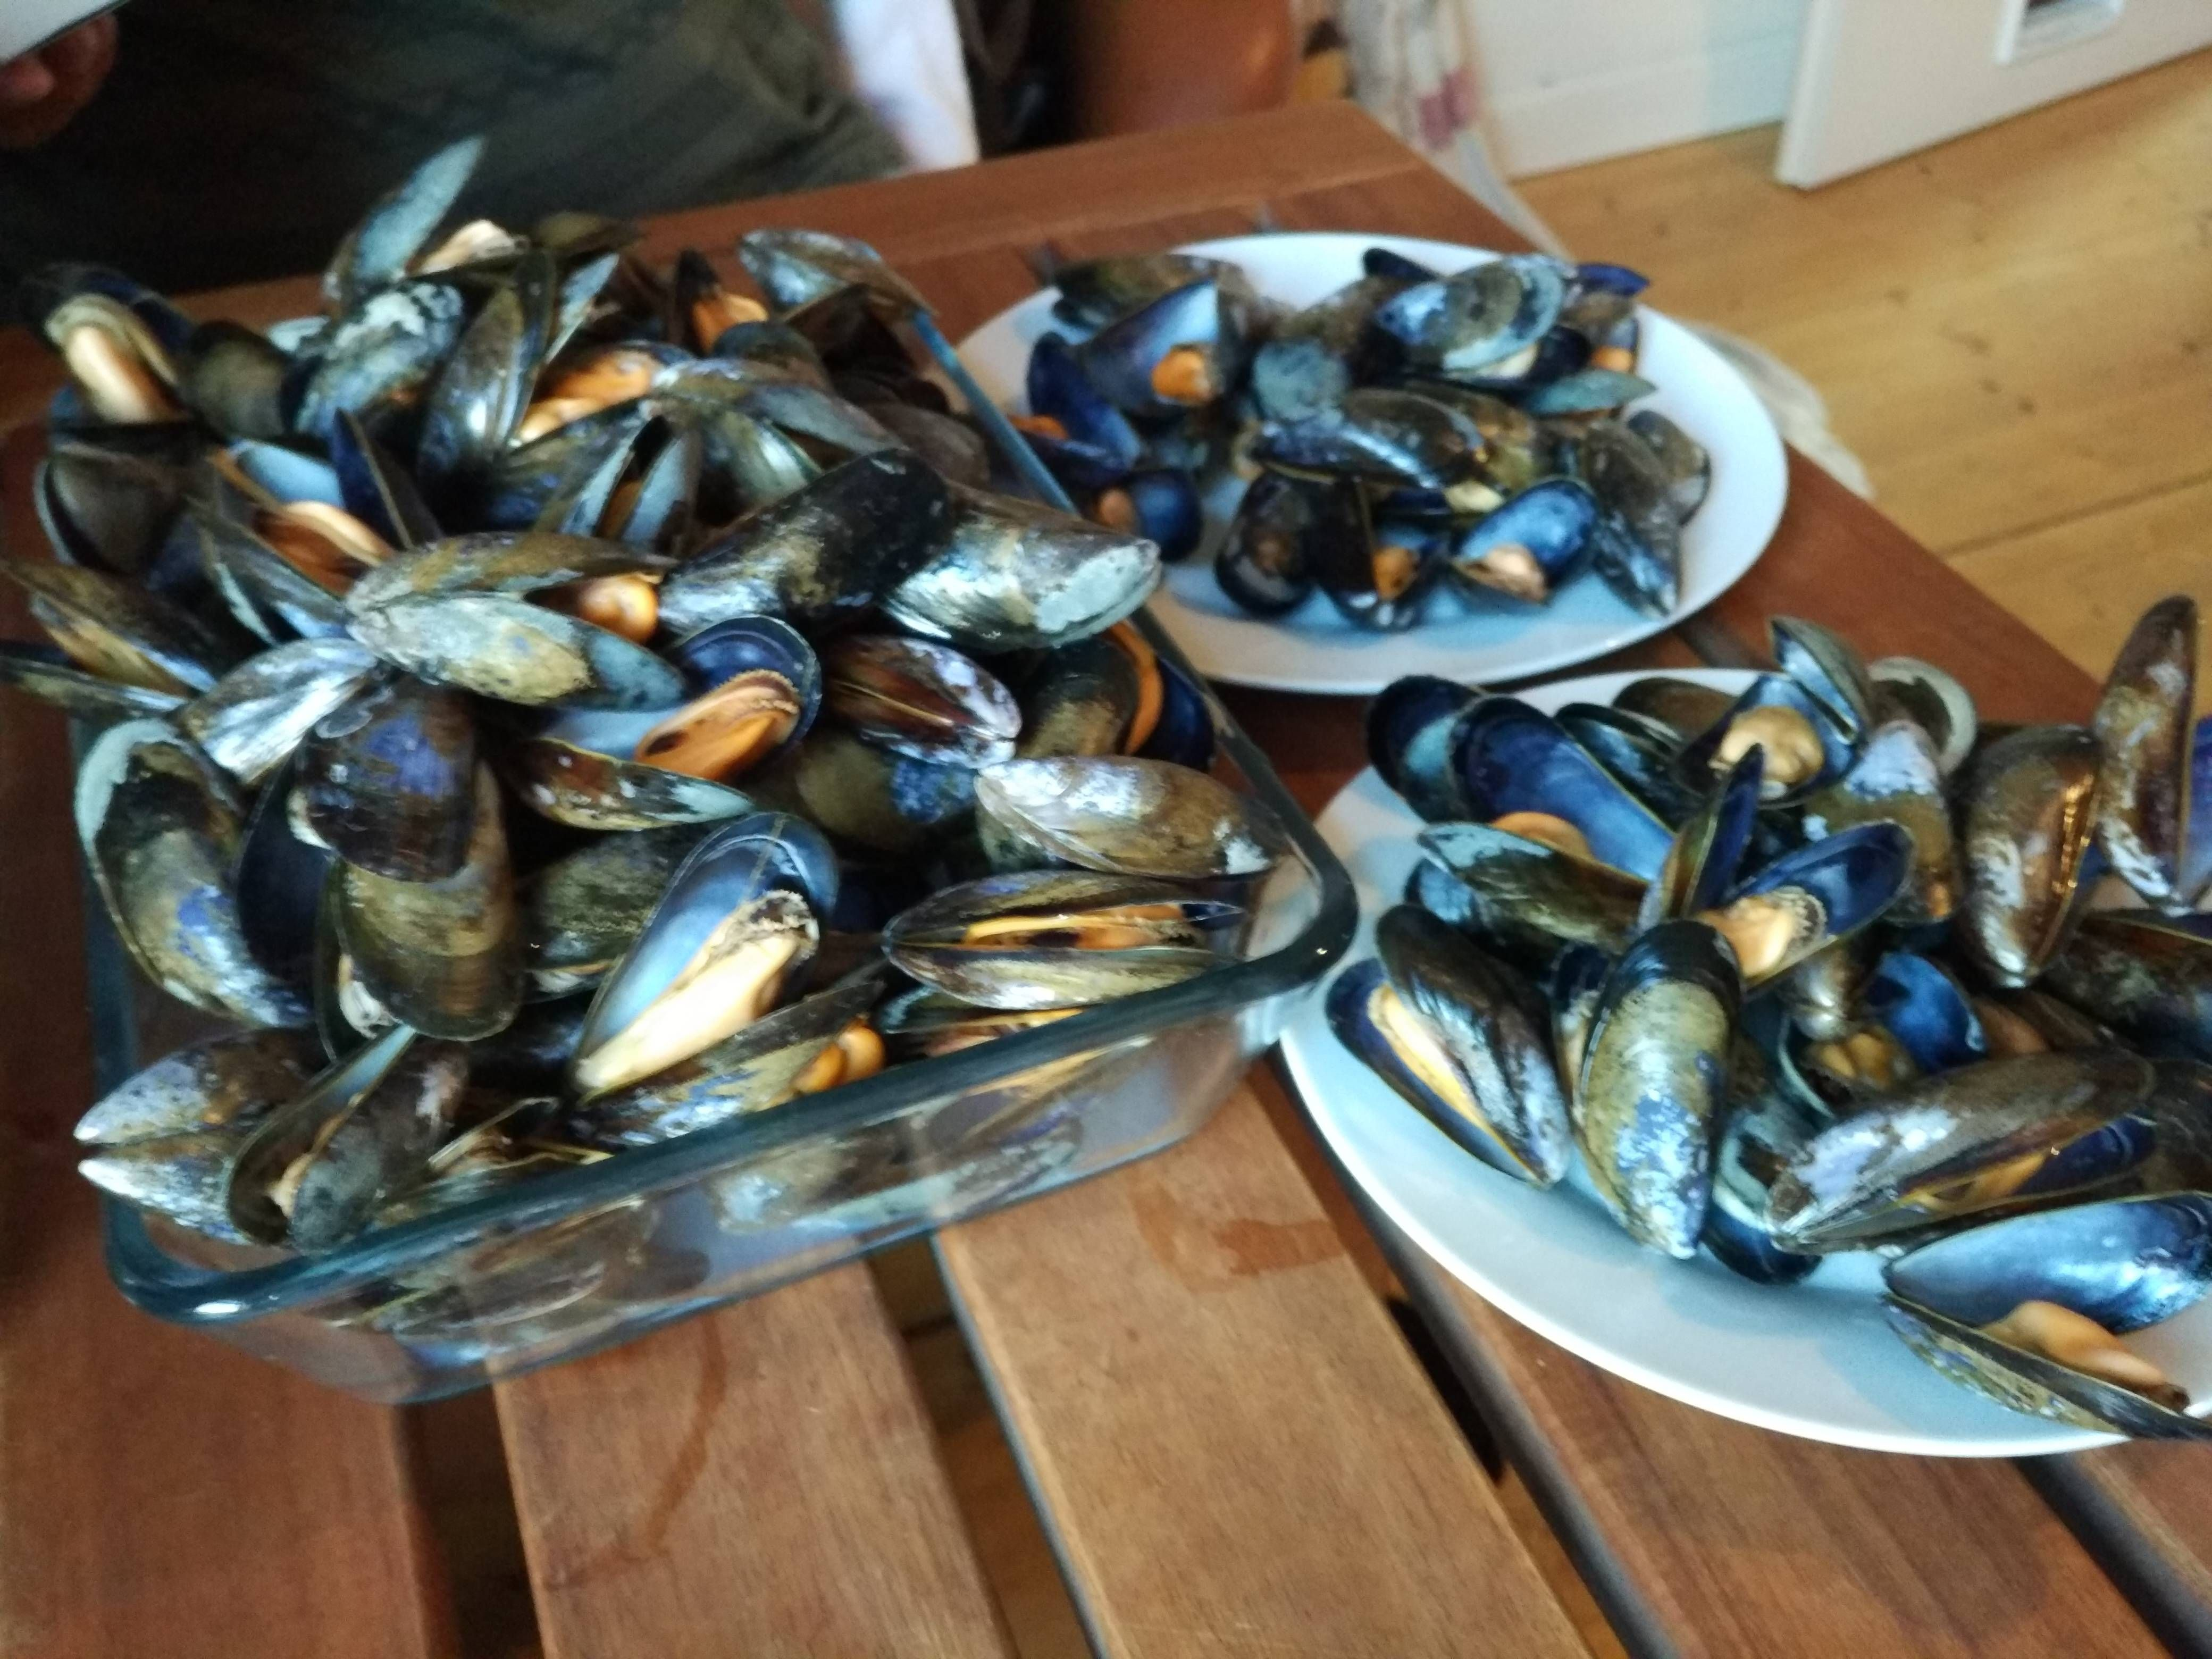 [Homemade] Steamed Mussels! #recipes #food #cooking #delicious #foodie #foodrecipes #cook #recipe #health